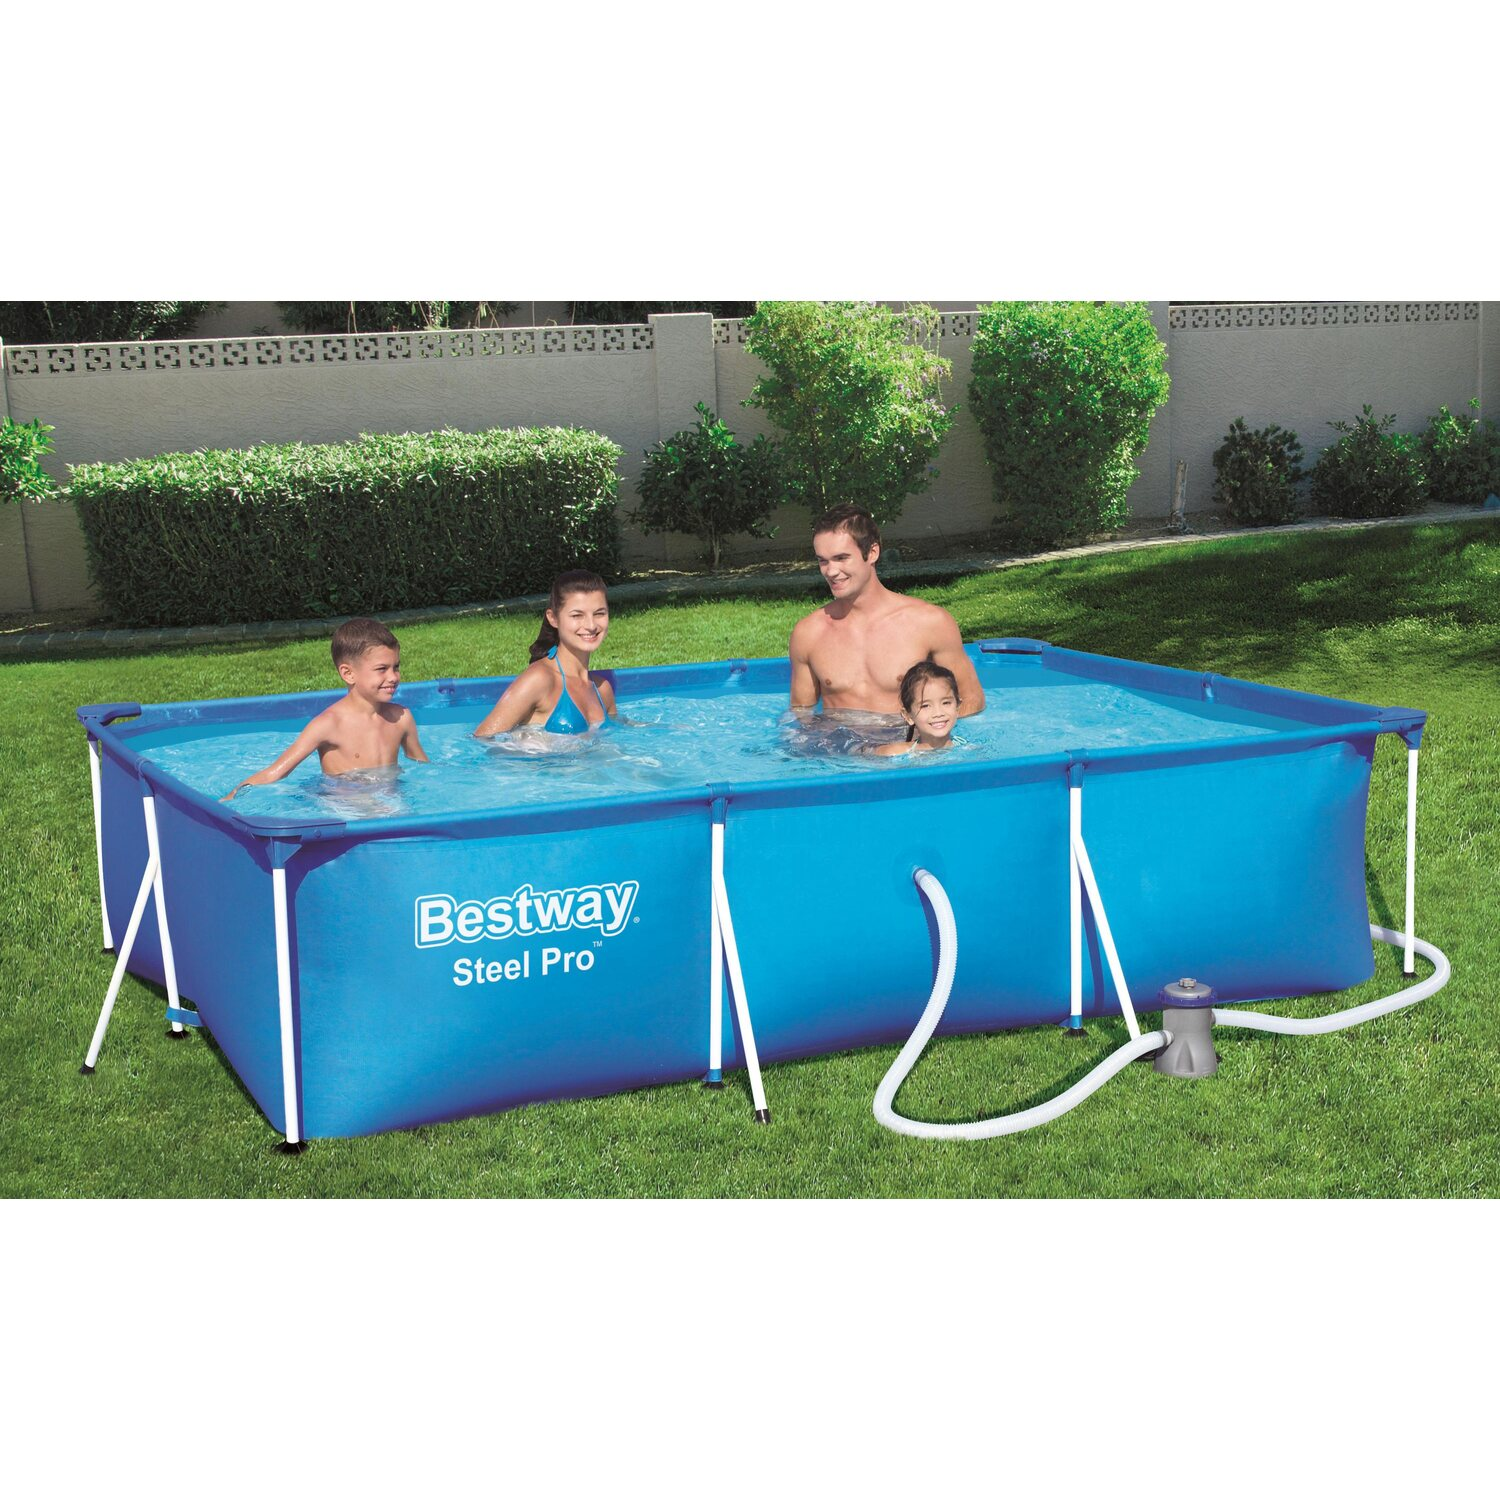 Bestway stahlrahmen pool pro set 300 cm x 201 cm x 66 cm for Bestway pool obi